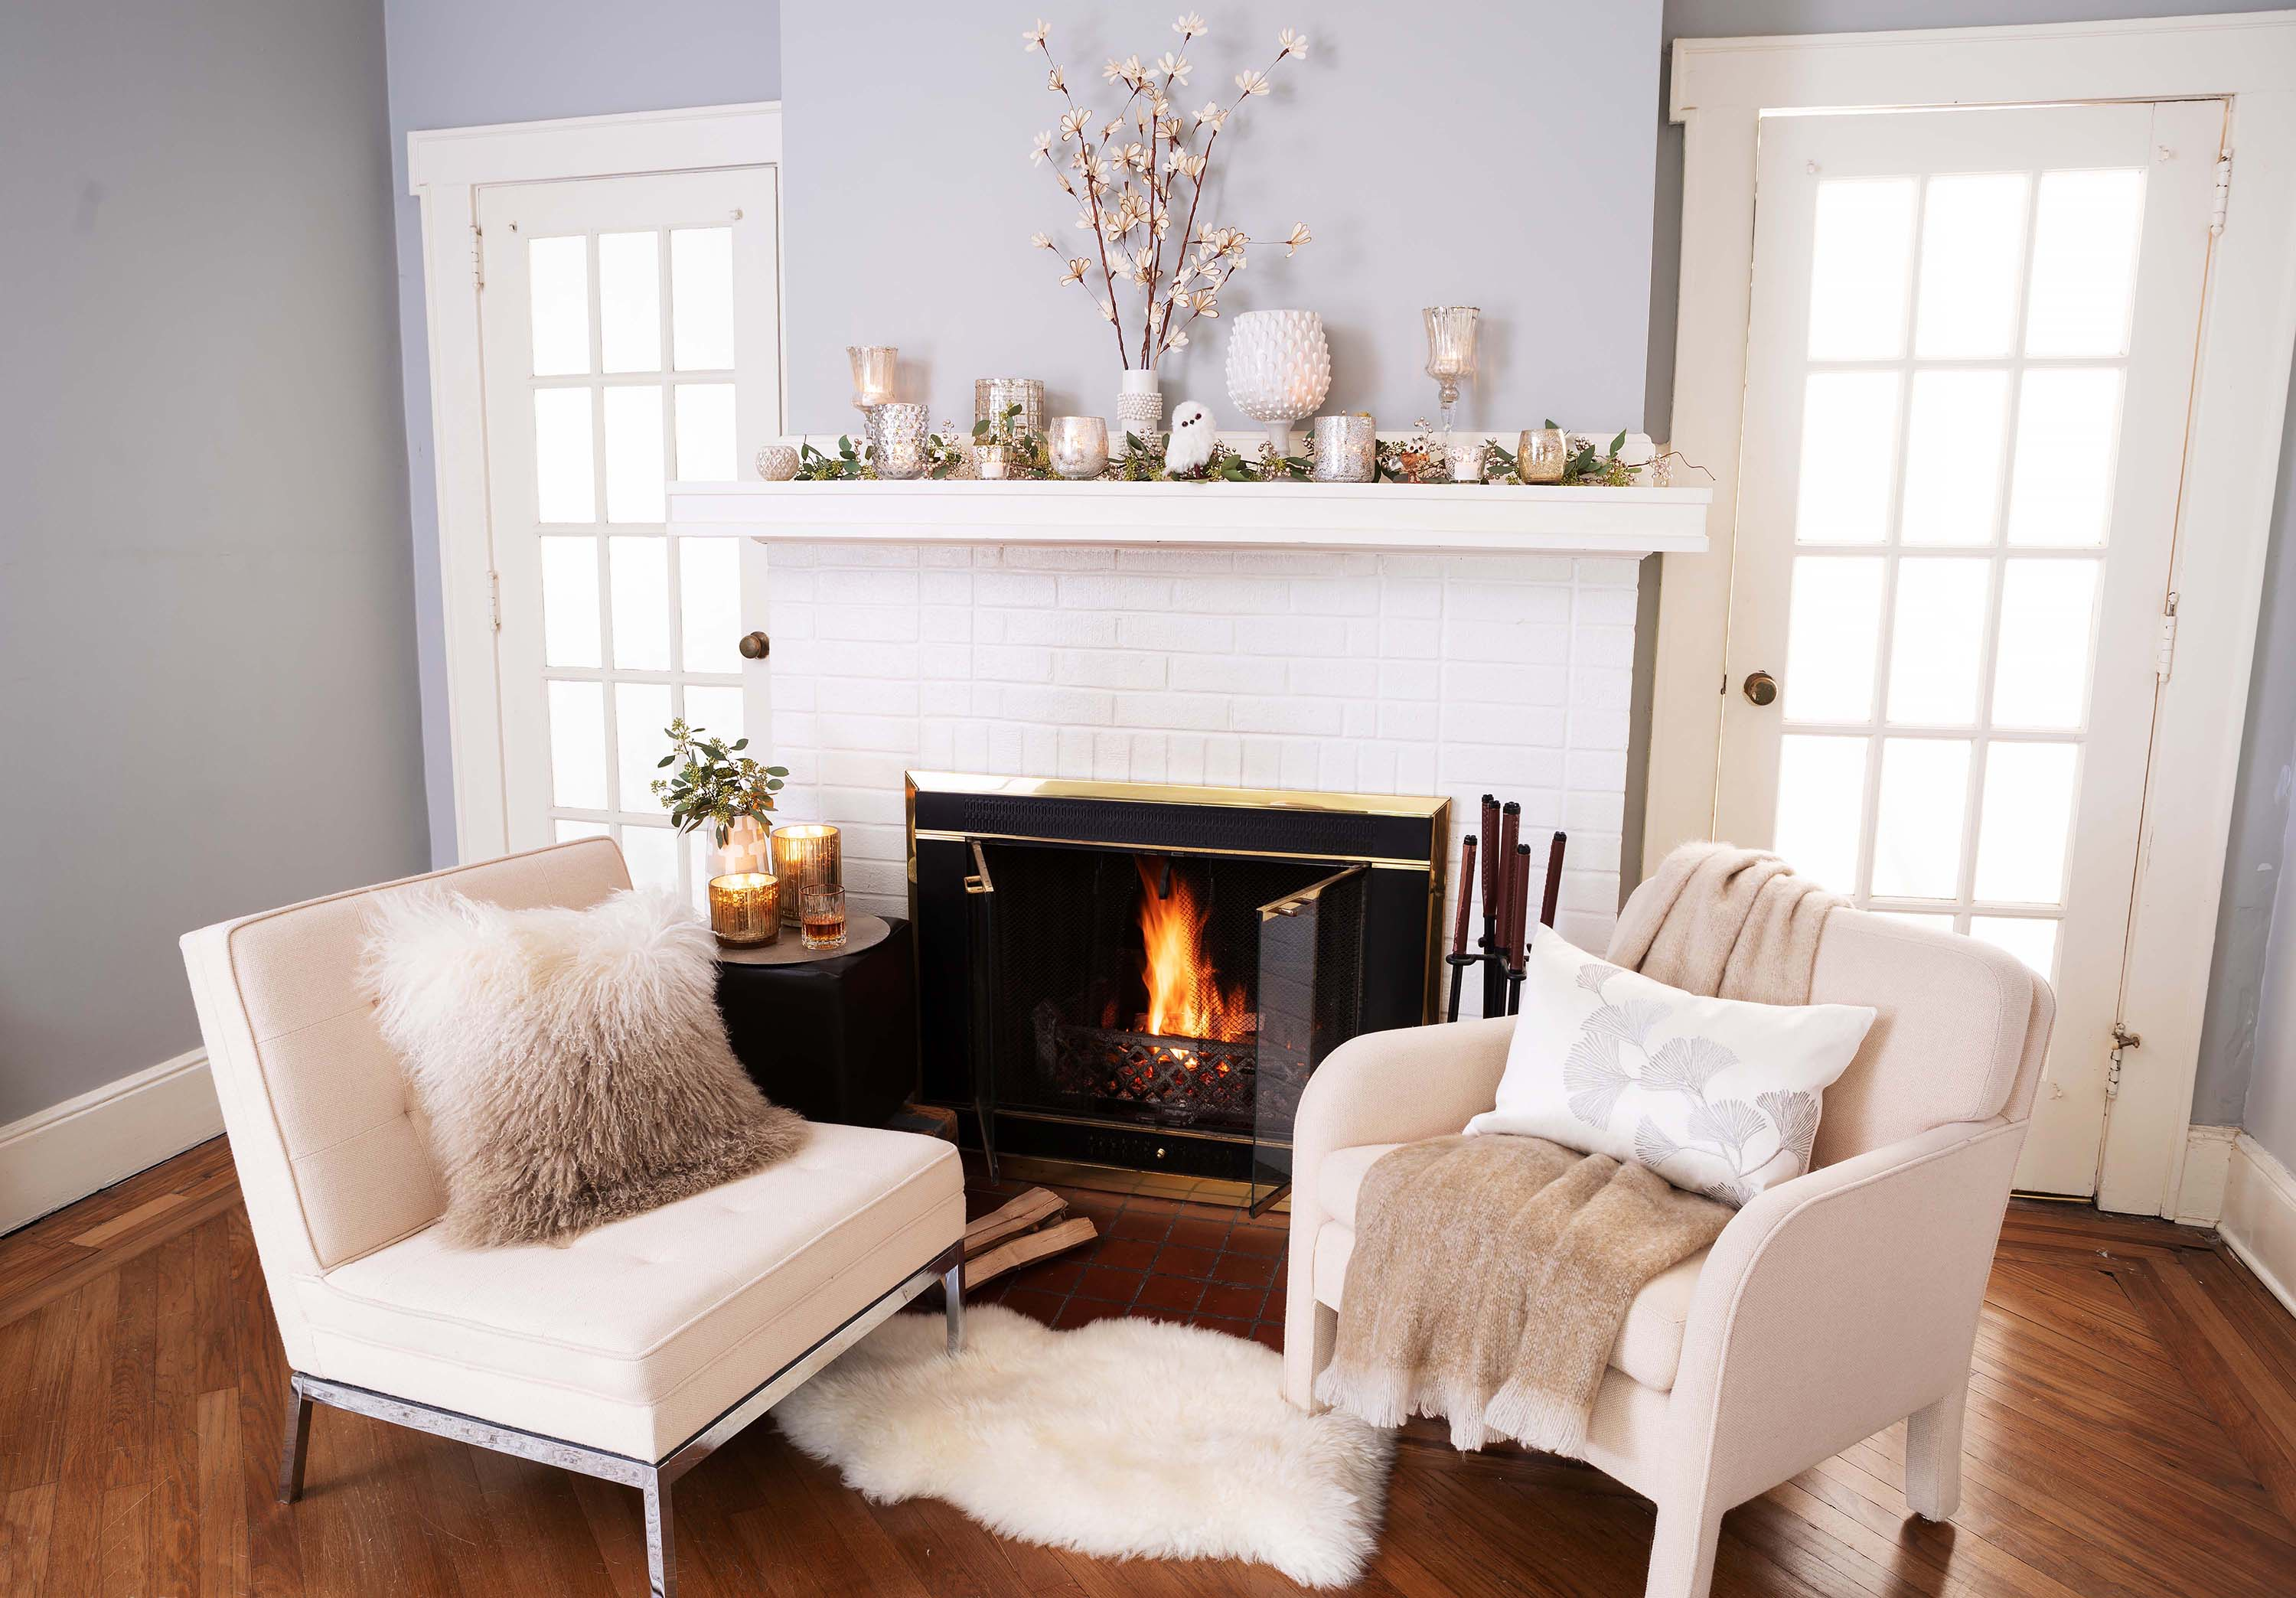 A fireplace mantel perfect for winter